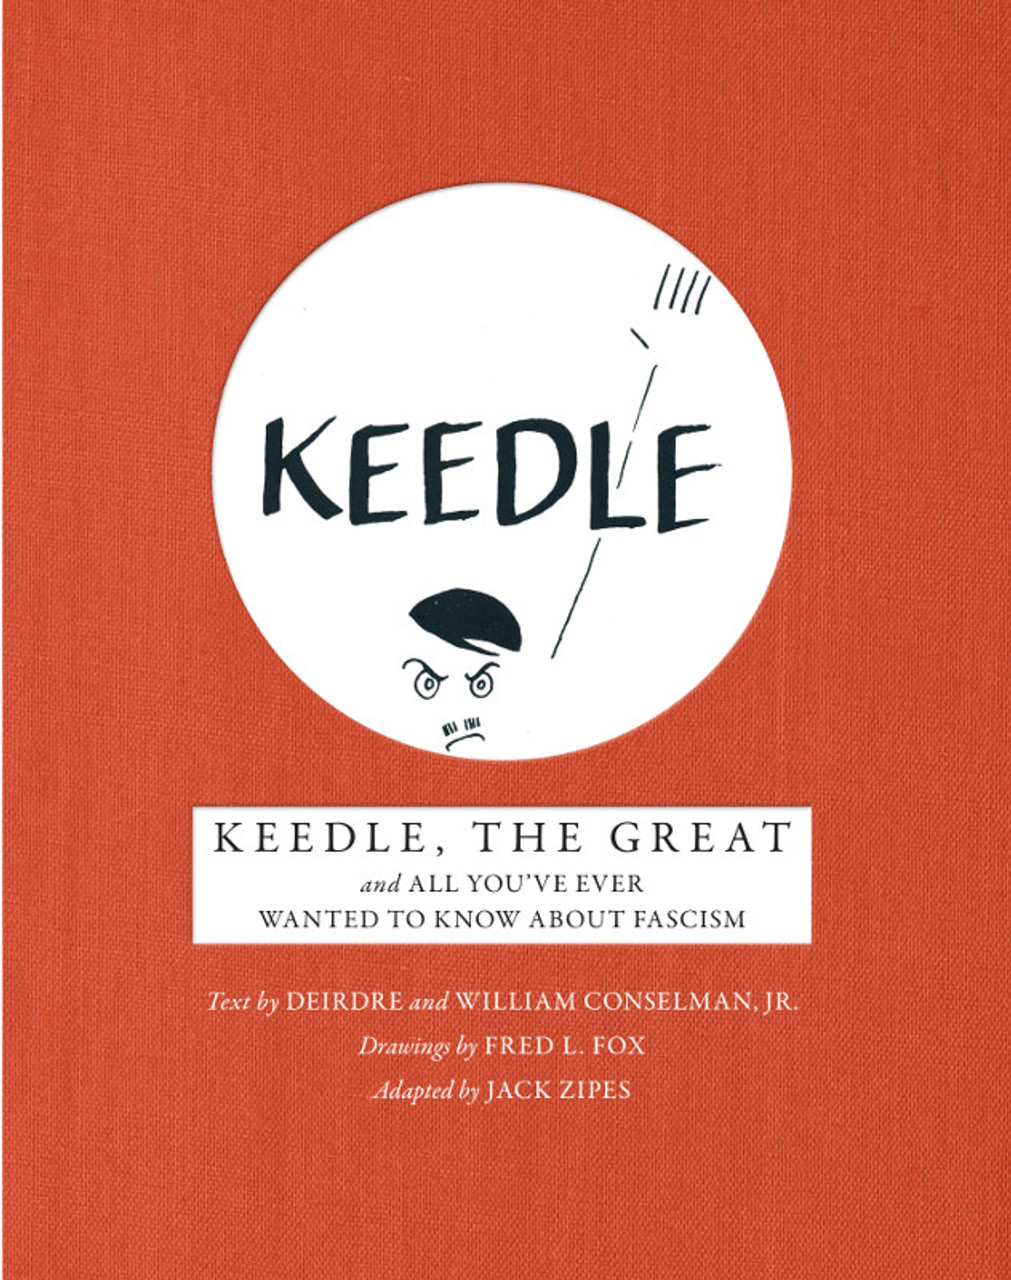 Keedle, the Great and All You've Ever Wanted to Know about Fascism